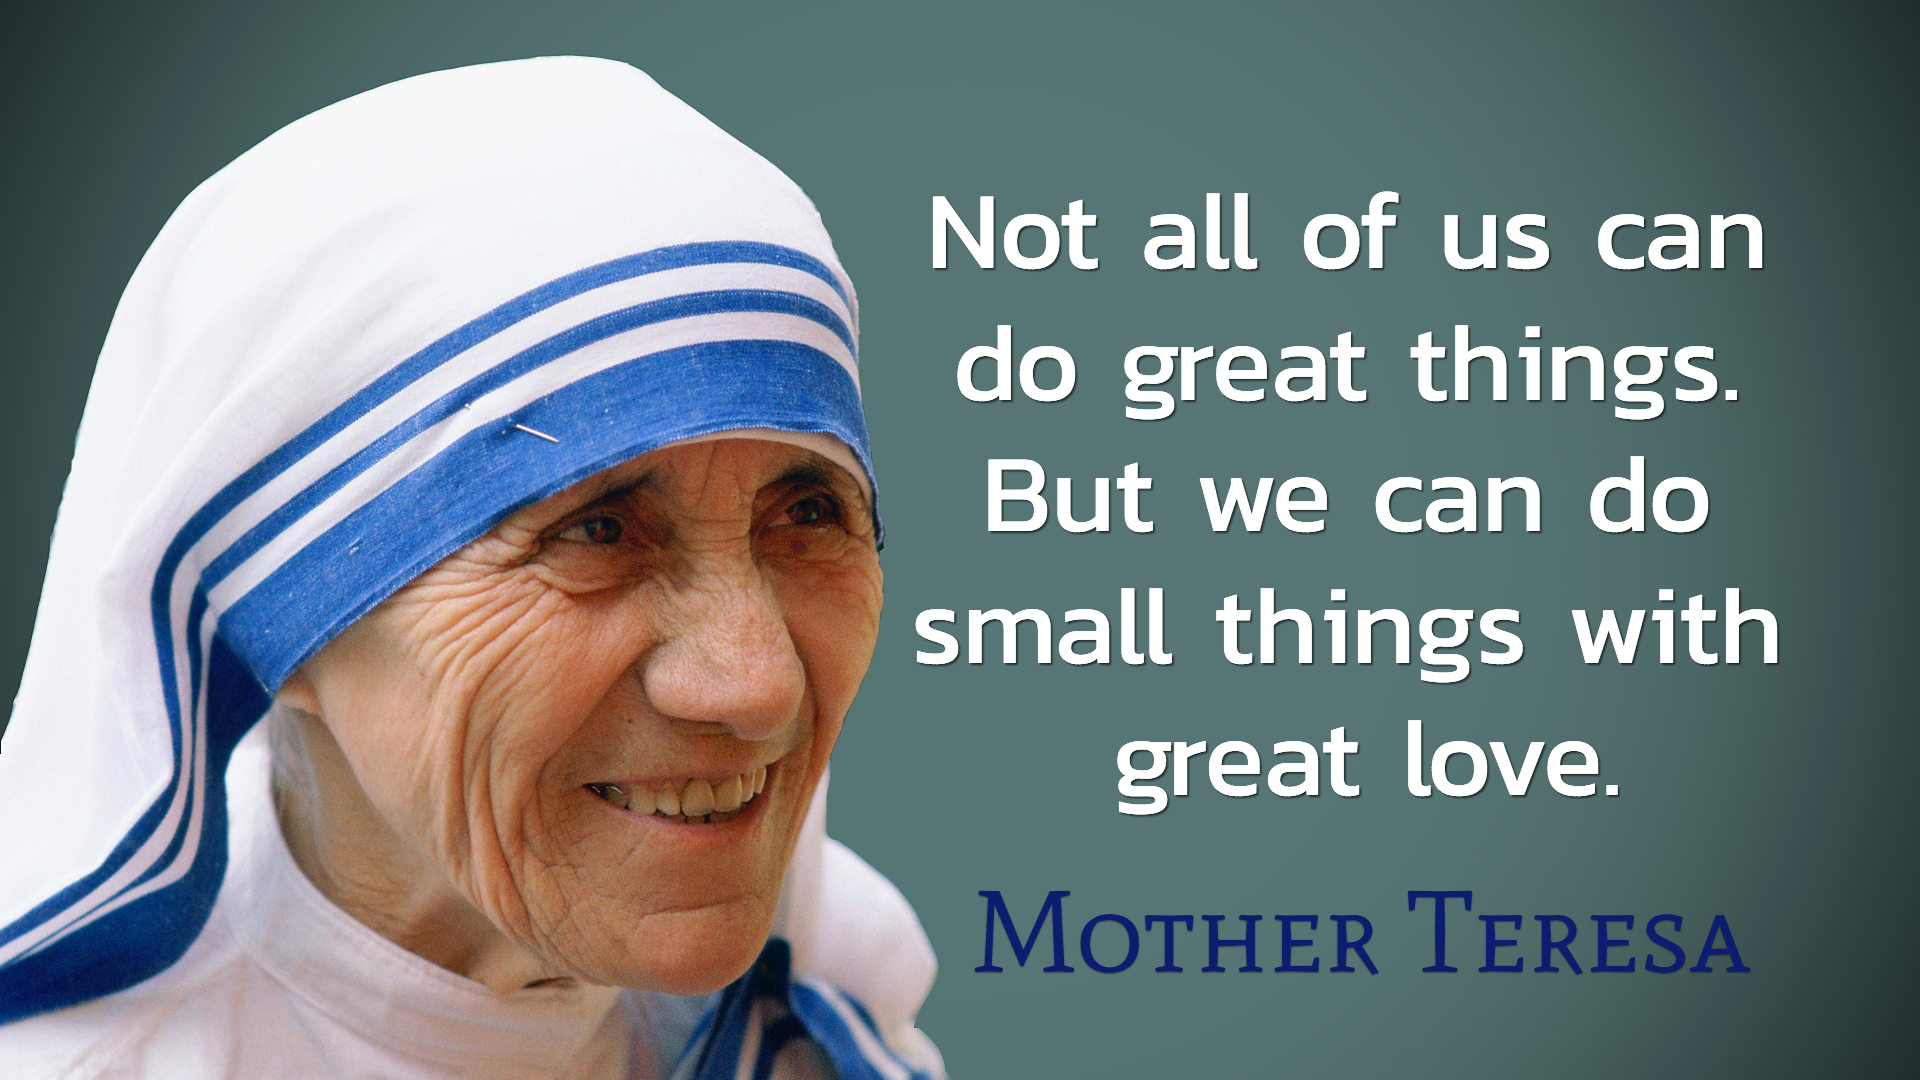 not all of us can do great things but we can do small things with great love...